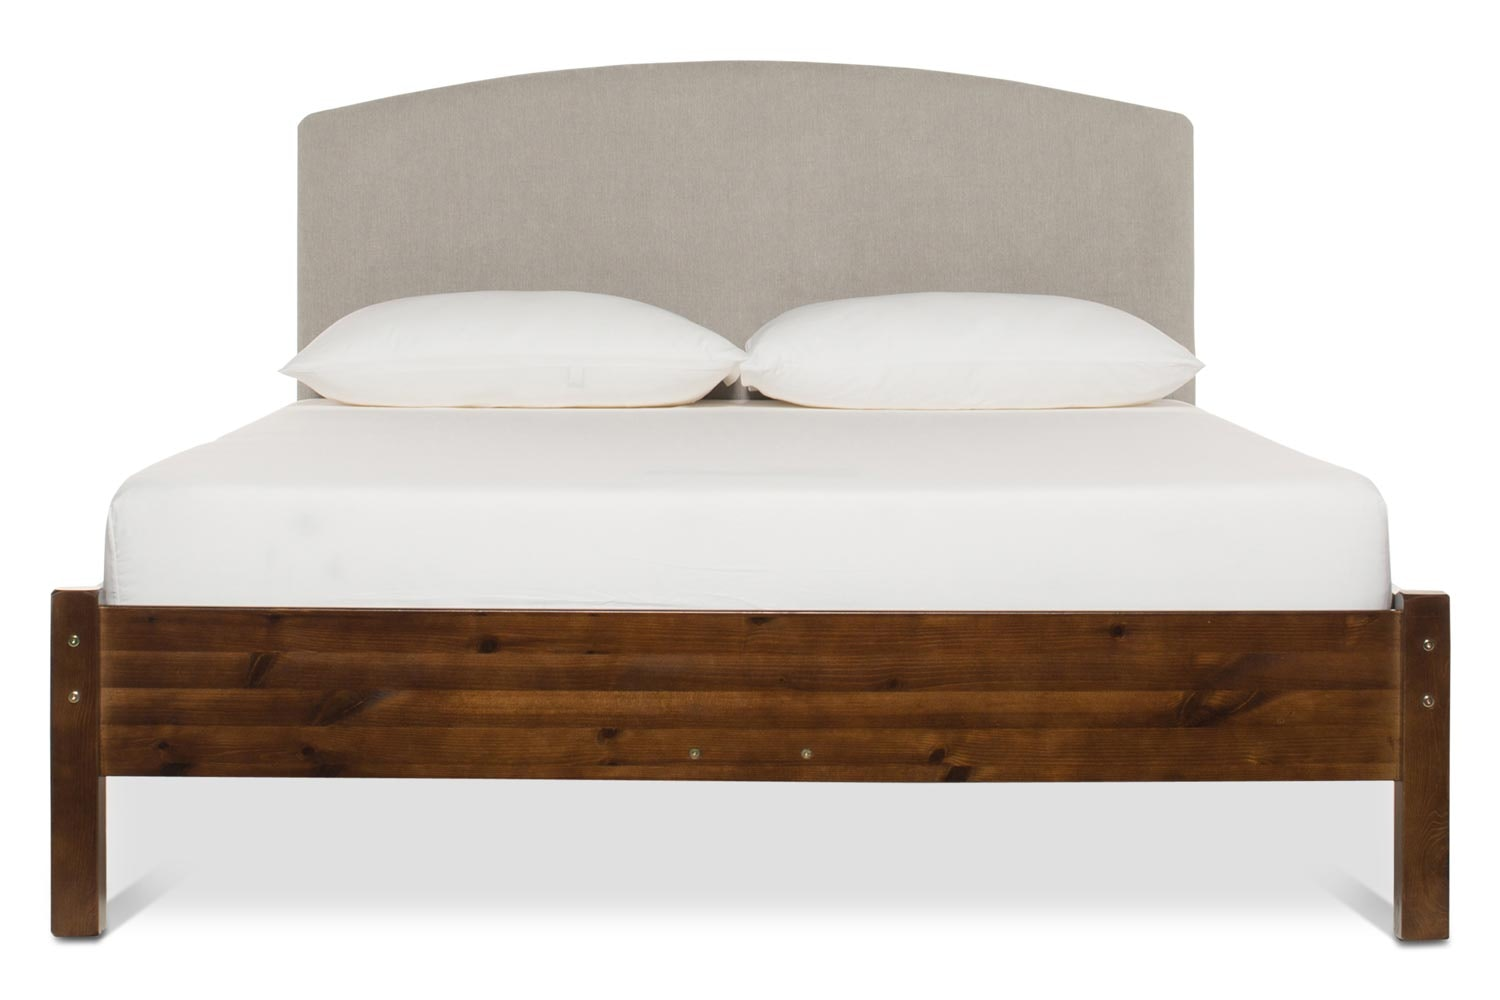 Emily Loft Walnut Bed Frame | 5FT | Lennon Headboard Silver